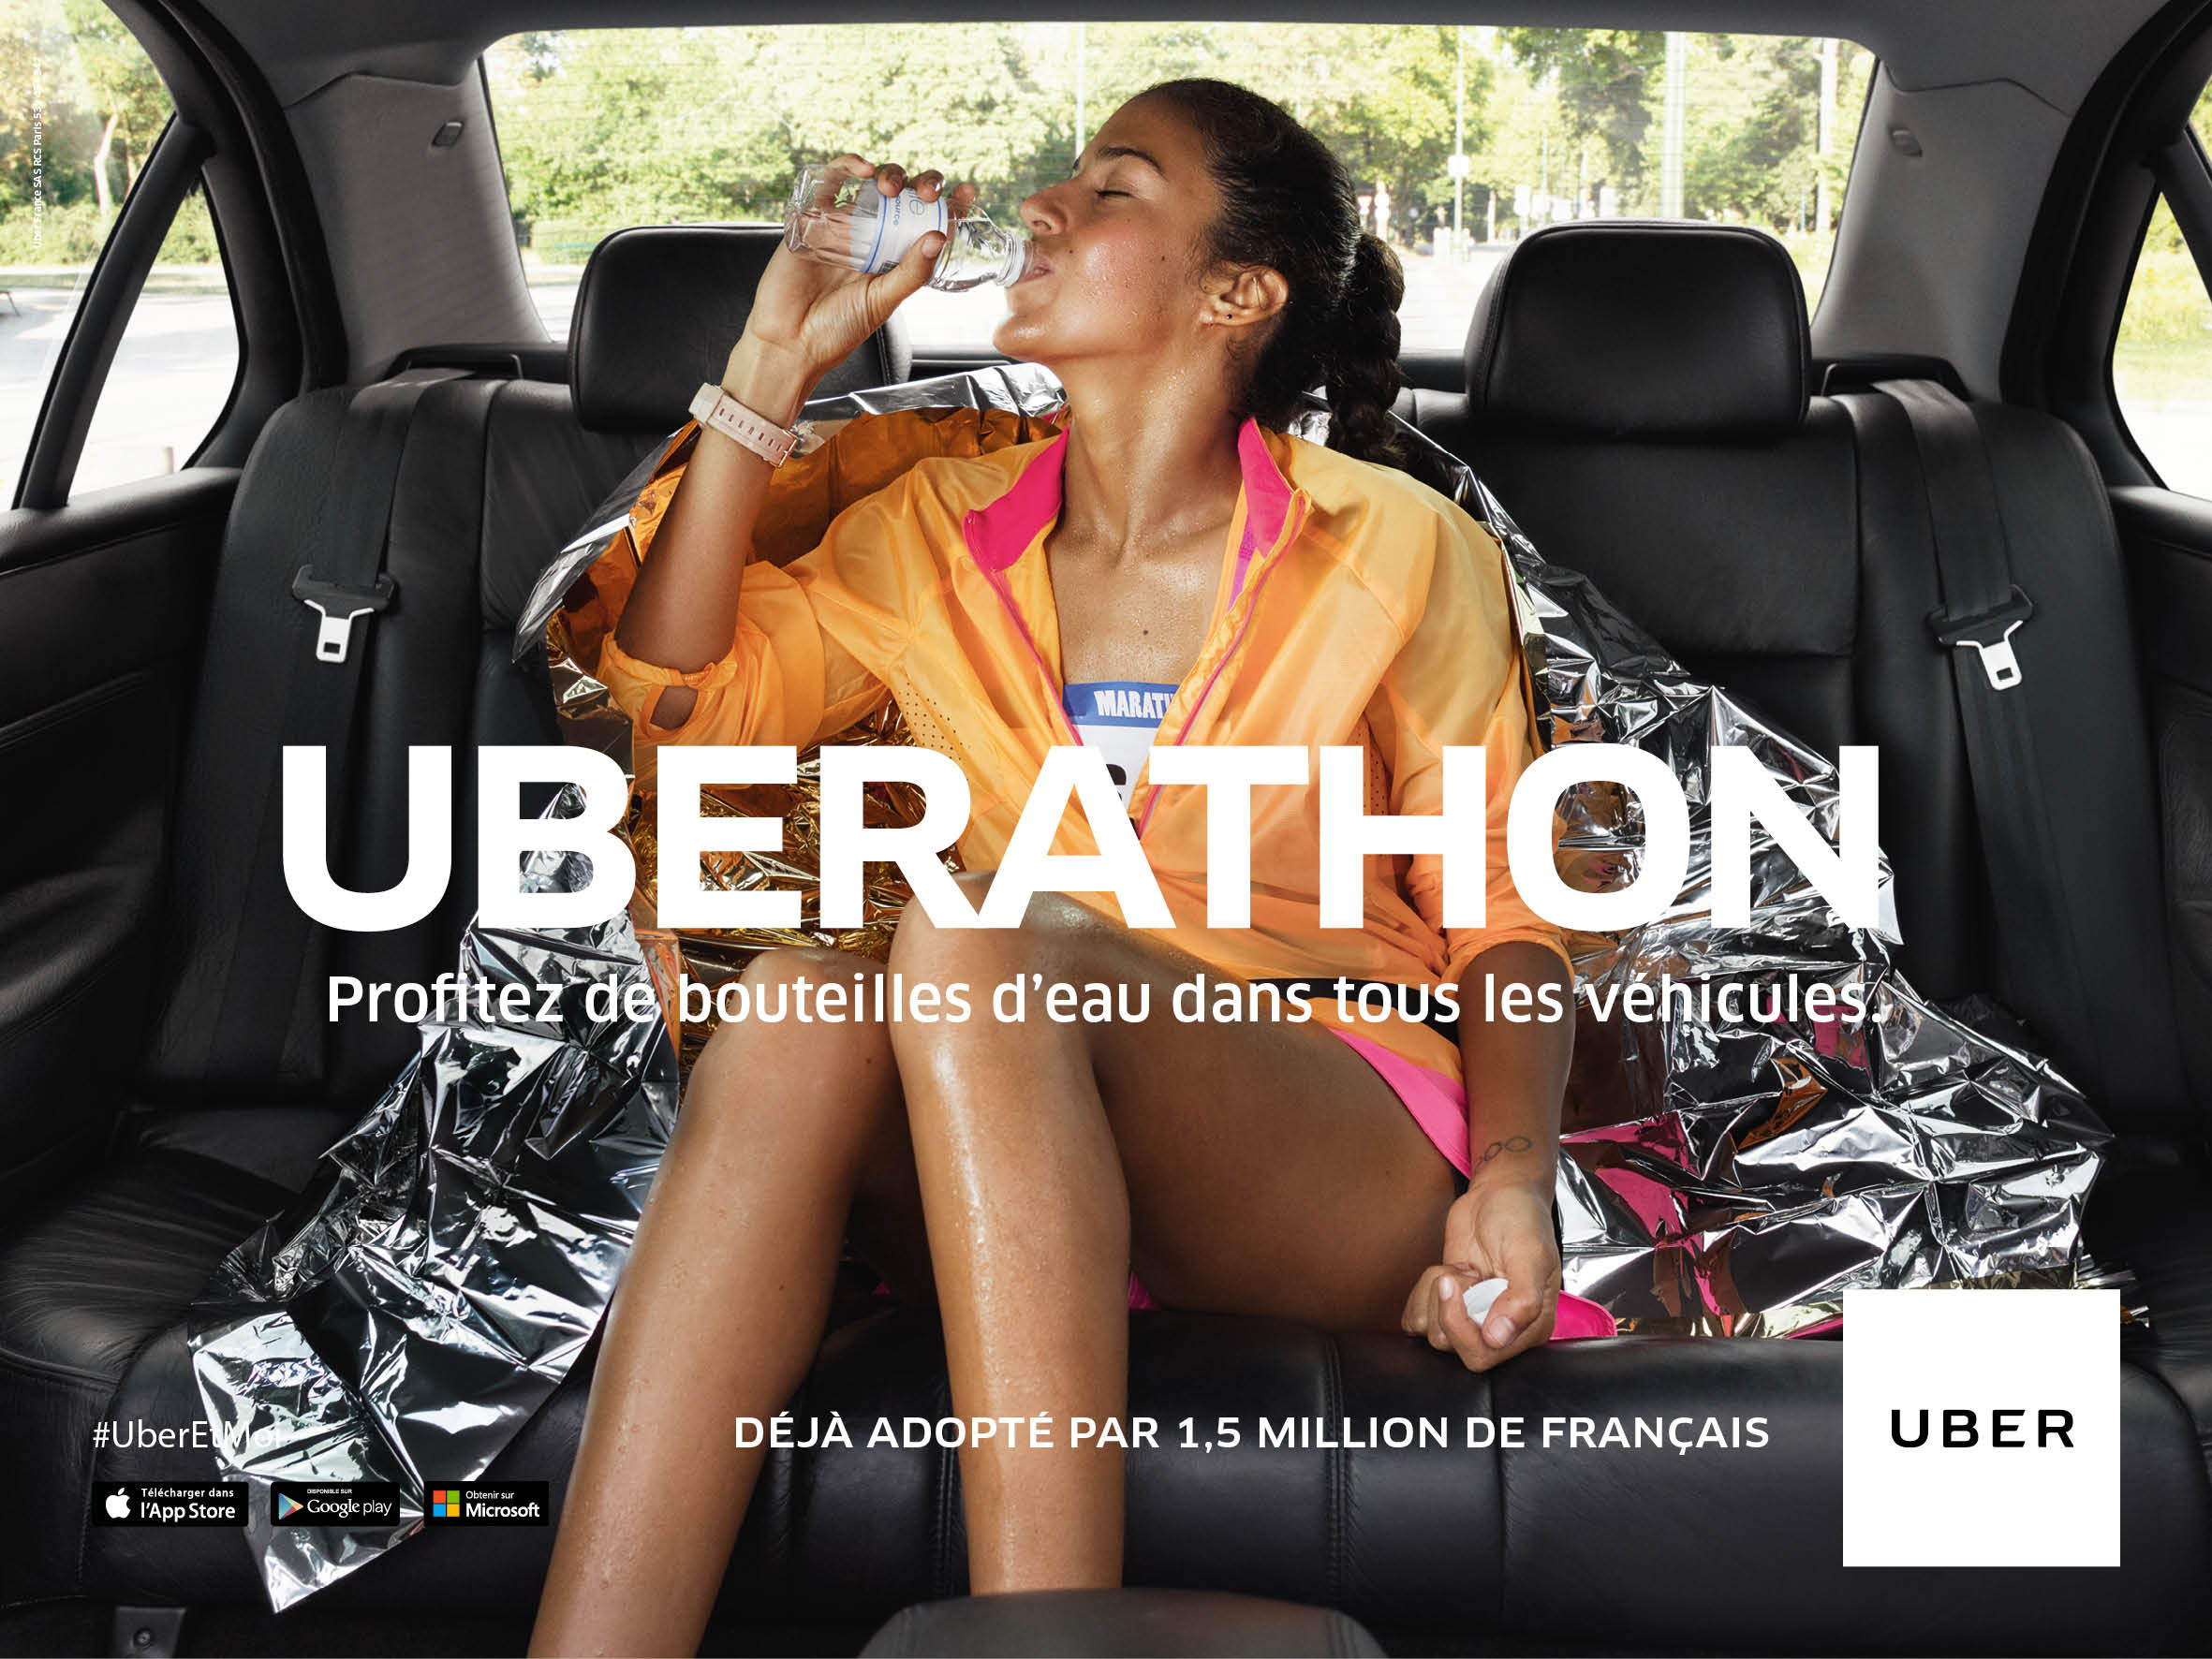 uber-france-publicite-marketing-application-utilisateurs-passagers-mars-2016-agence-marcel-publicis-12